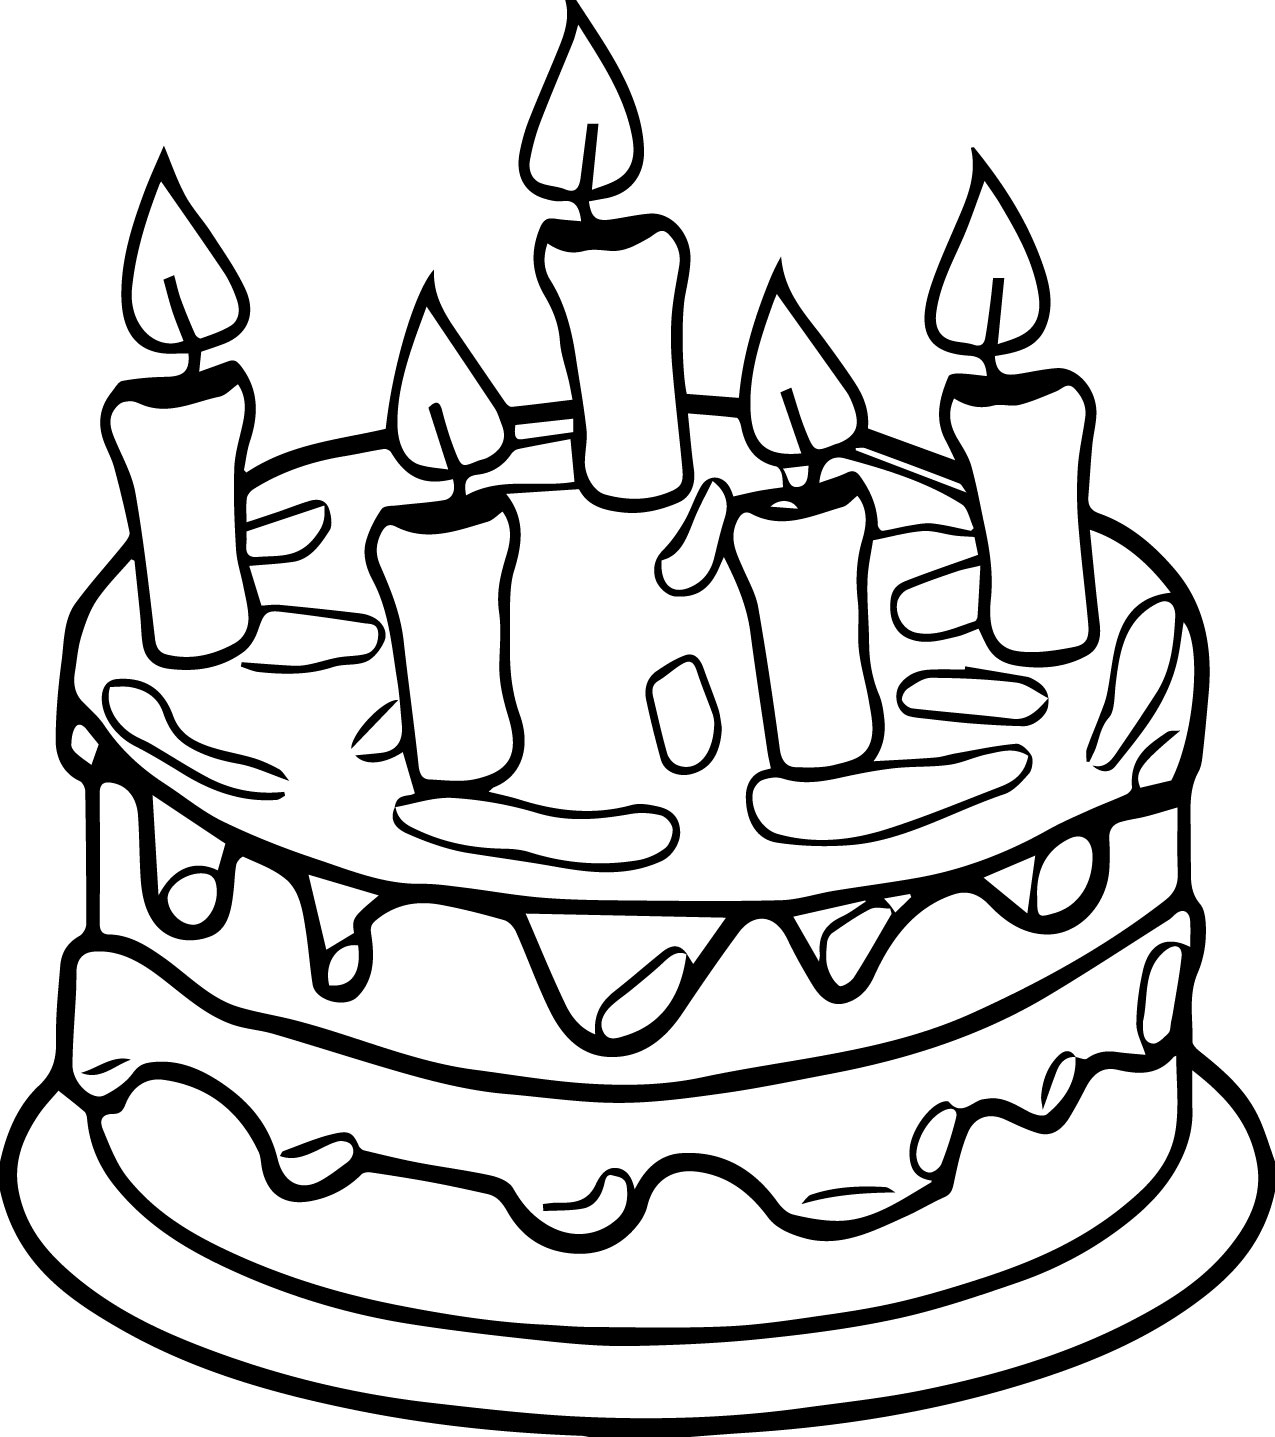 Happy Birthday Coloring Pages | Free download on ClipArtMag